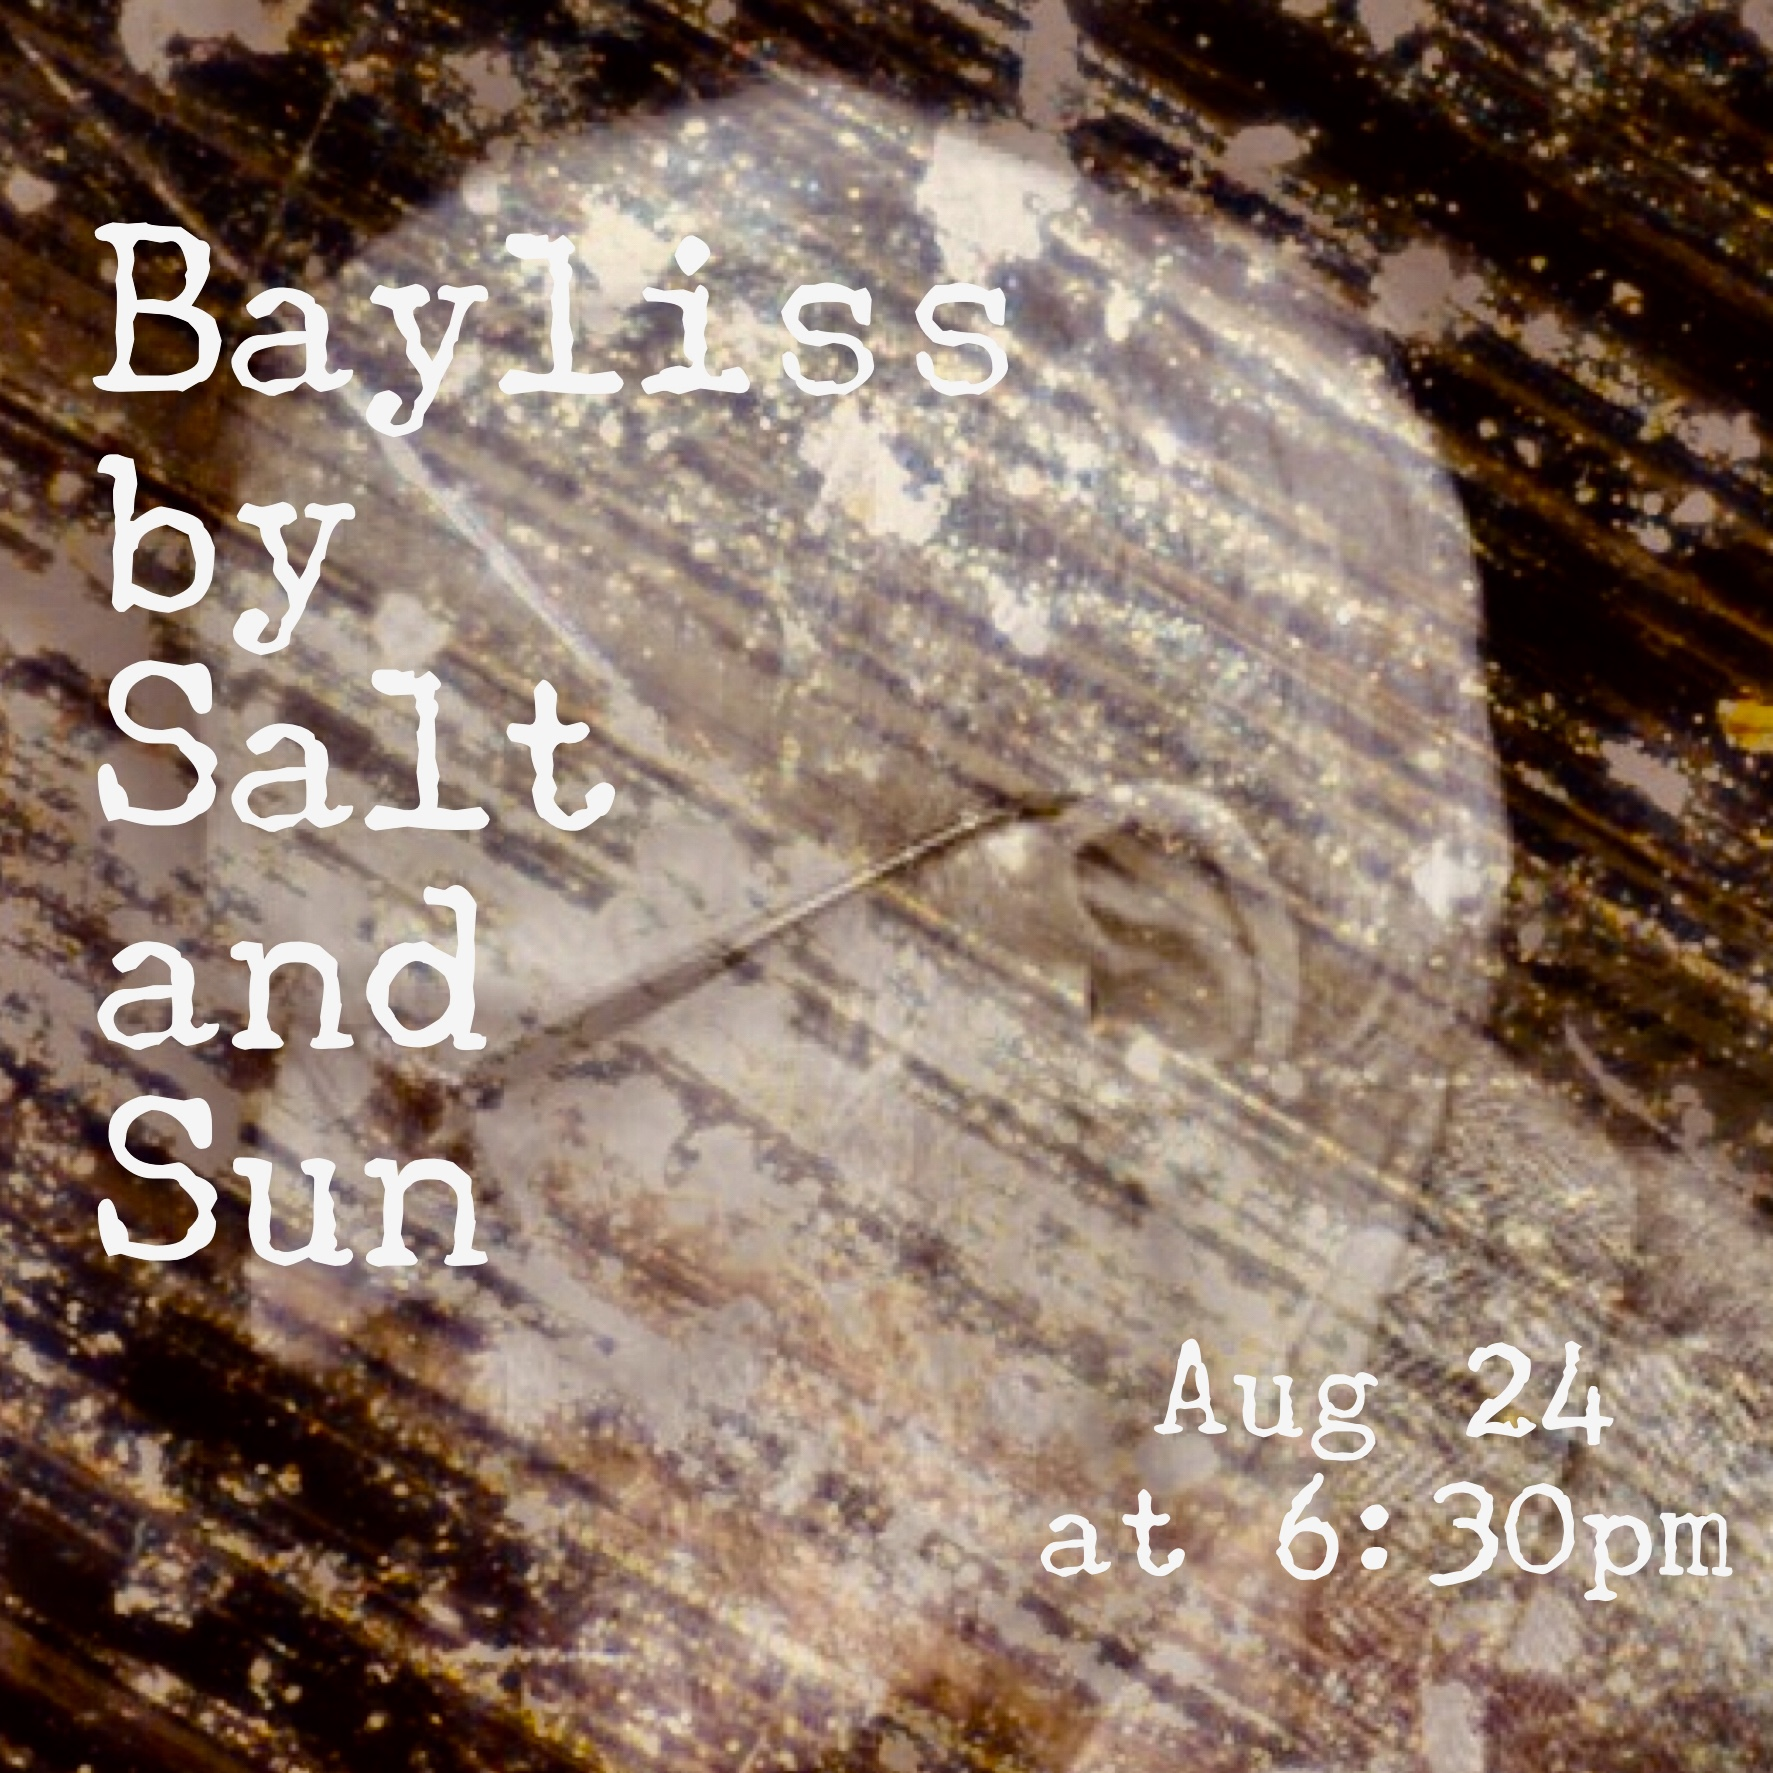 "Bayliss by Salt and Sun - DogMa presents its highly anticipated second event, ""Bayliss by Salt and Sun,"" an interdisciplinary celebration of the work of writer, philosopher, and Gloucester legend Jonathan Bayliss. A creative collaboration between Dogtown Books and MAGMA, this event features local writers and leaders who will share performative readings of Bayliss' most breathtaking works, in combination with the creative possibilities of visual art and live music.Saturday Aug 24; doors 6:30 PM, show 7:00pmat Magma, 11 Pleasant St., Suite 64Gloucester, MA 01930Get your tickets in advance to be sure you have a seat! Tickets available here."